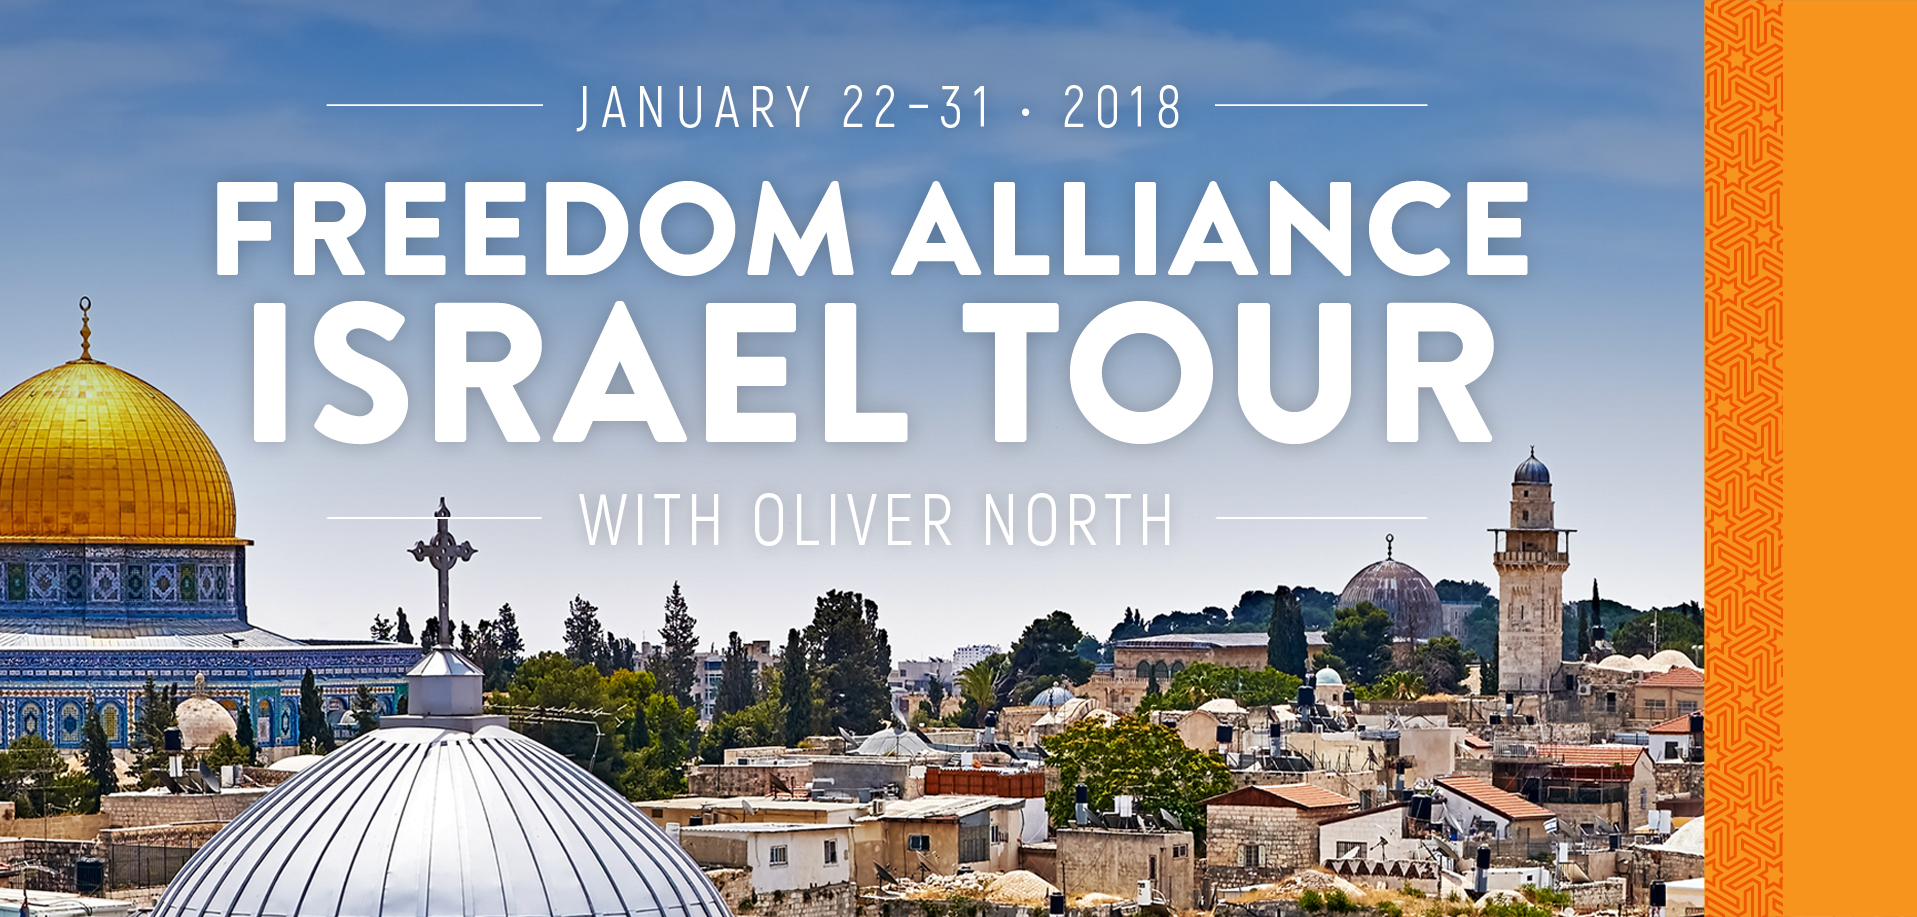 Take a Christian TourWOX with Freedom Alliance Israel Tour - Christian Tour to Israel - January 22-31, 2018